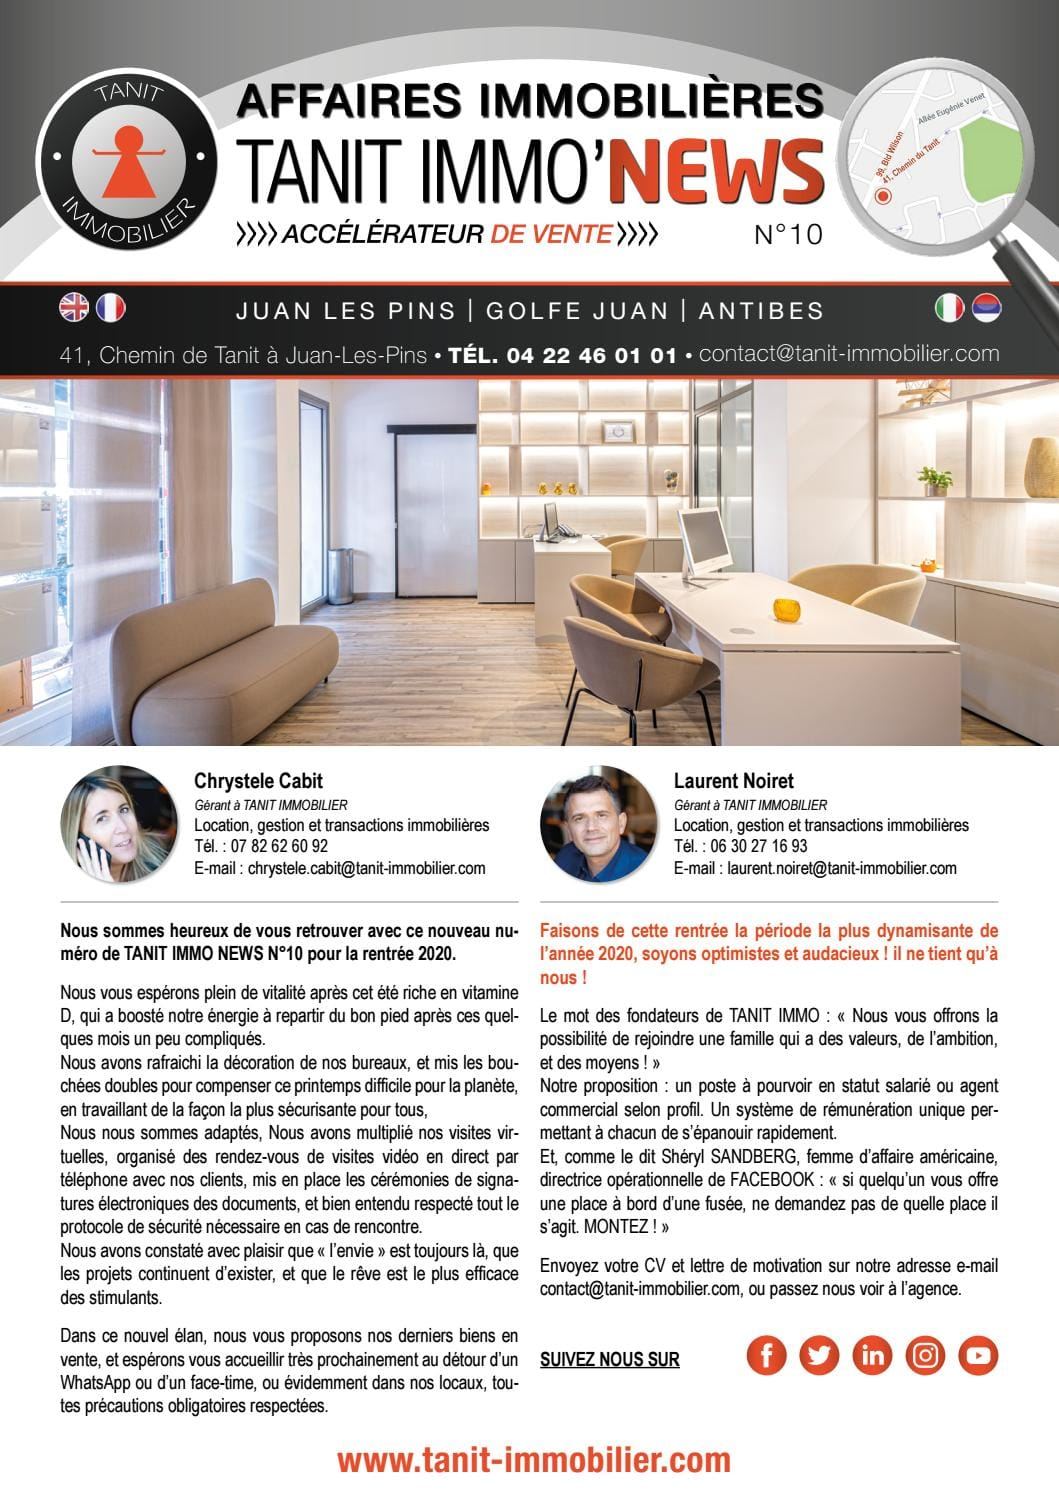 Tanit Immobilier - Magazine Tanit Immo News No 10 - Septembre 2020